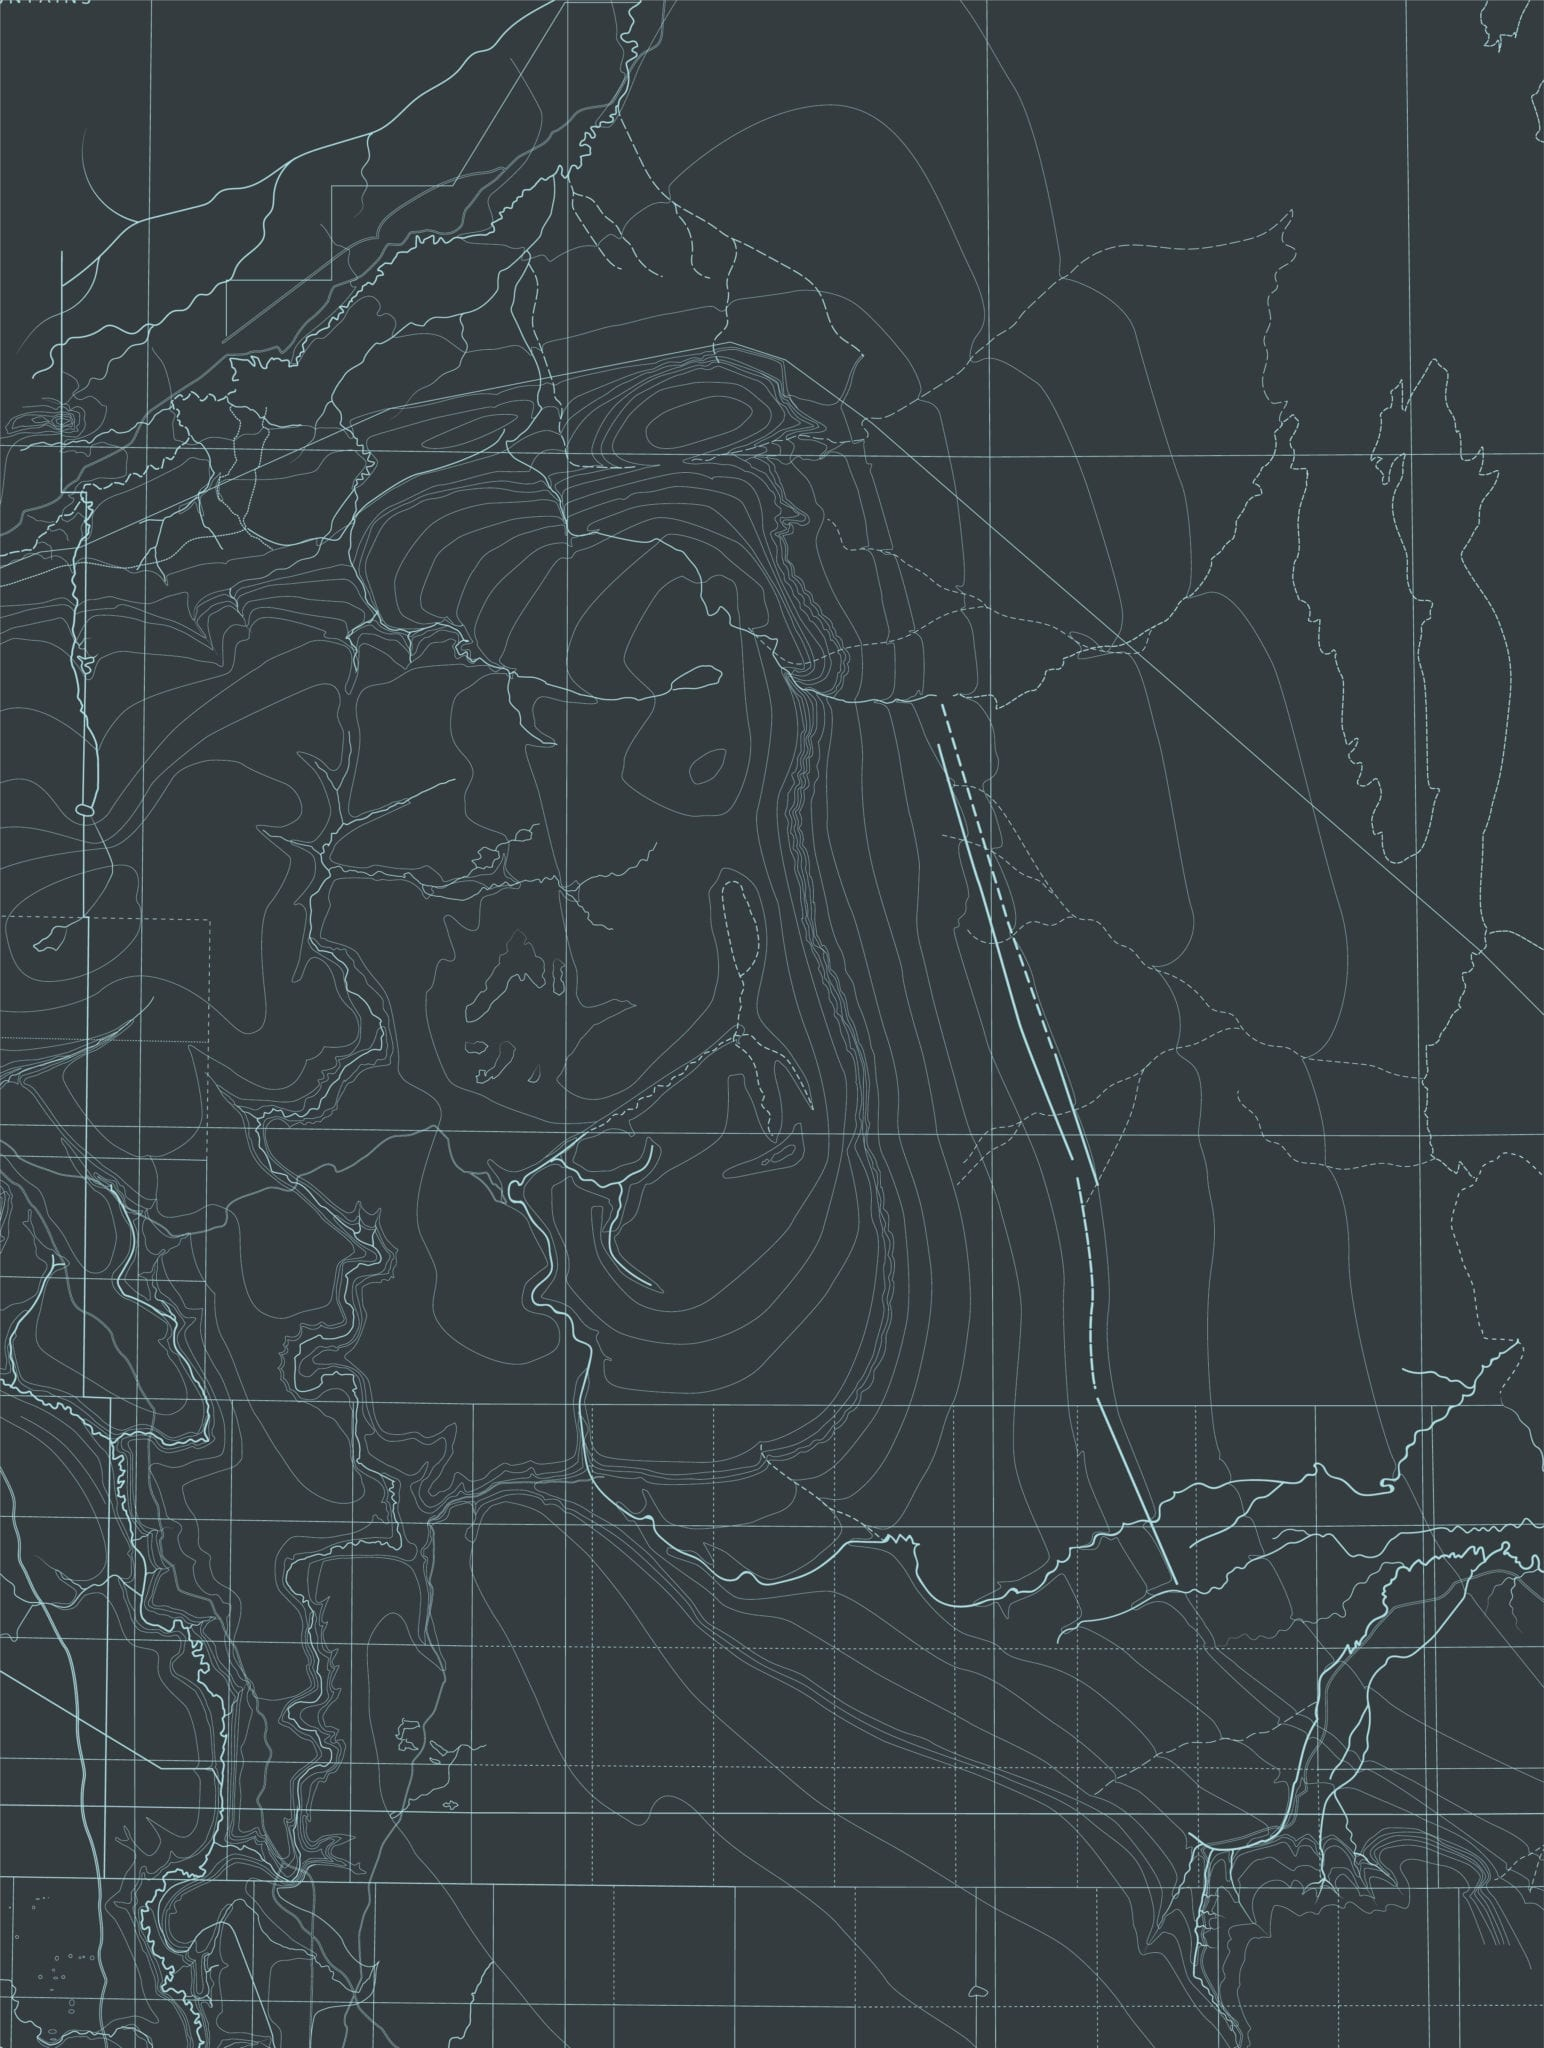 Maps & Lines